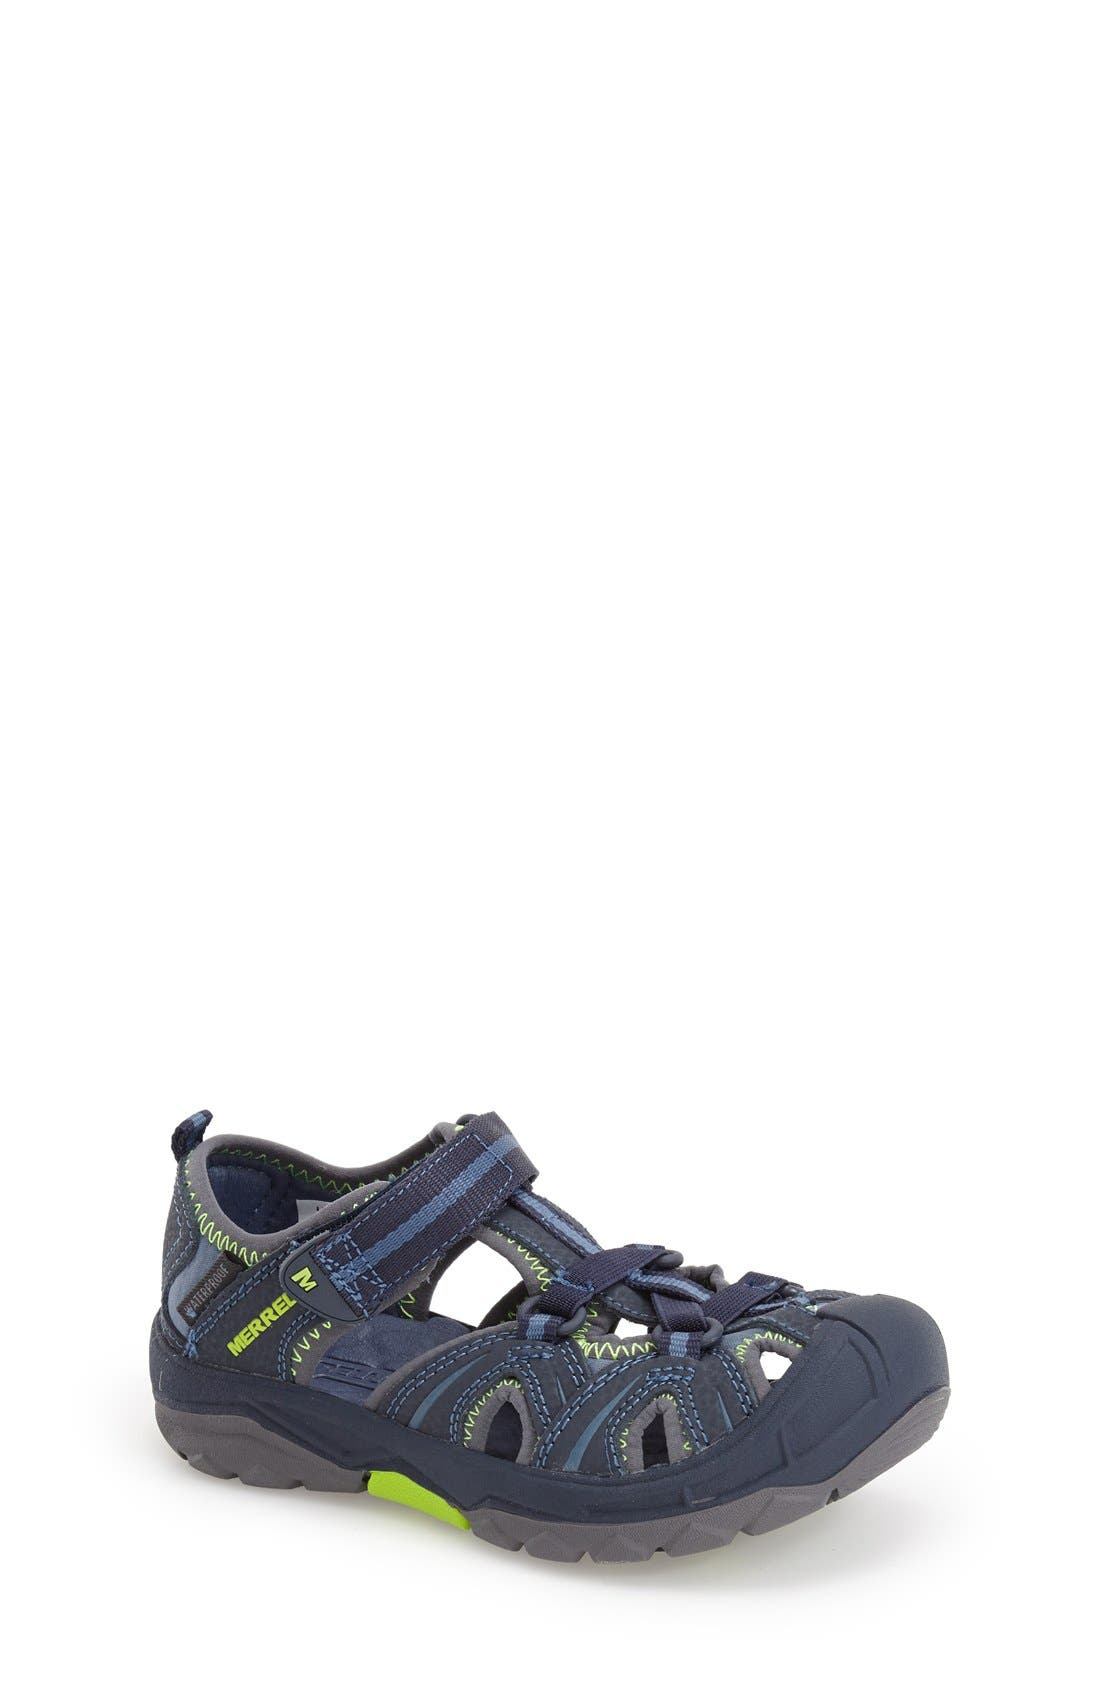 'Hydro' Water Sandal,                         Main,                         color, Navy/ Green